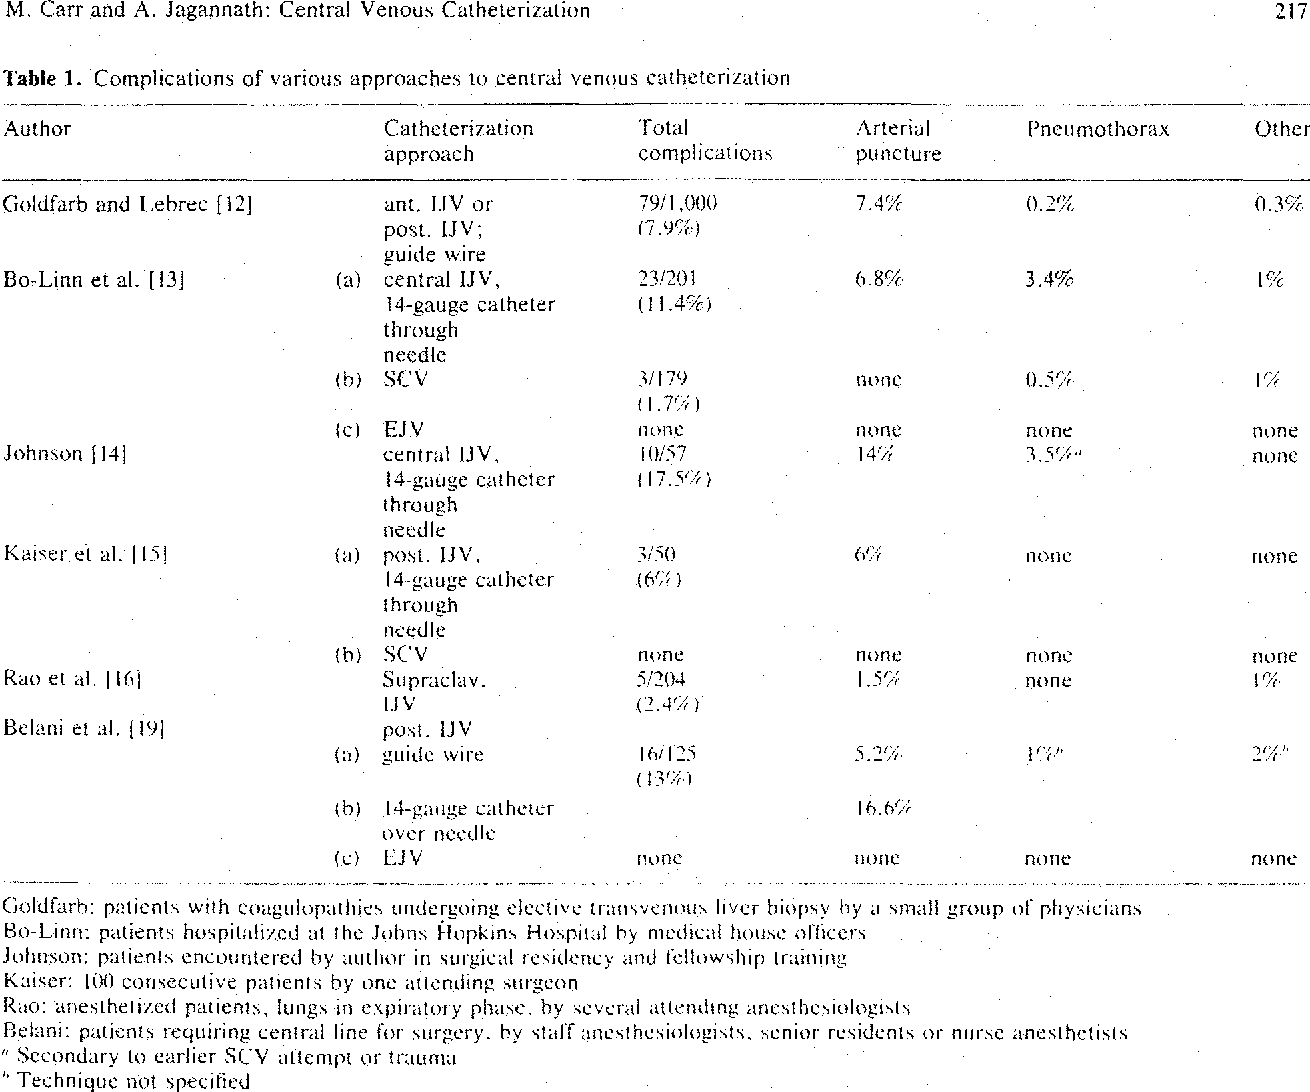 Table 1. Complications of various approaches to central venous catheterization 217